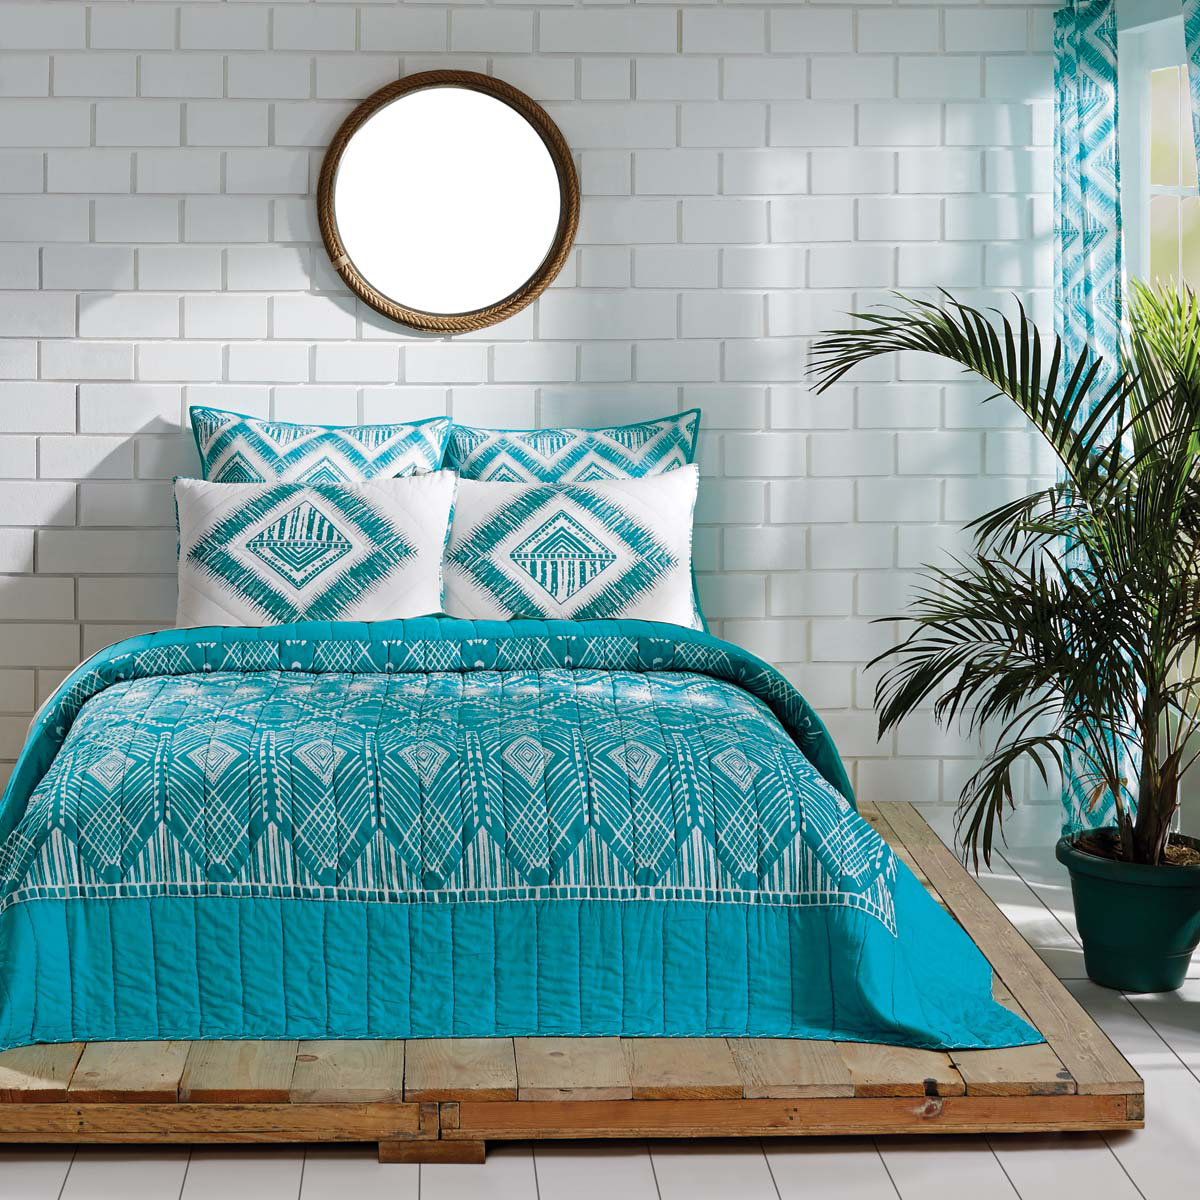 3-pc King Karina Quilt and Shams Set - Teal/Marshmallow - Tribal - VHC Brands